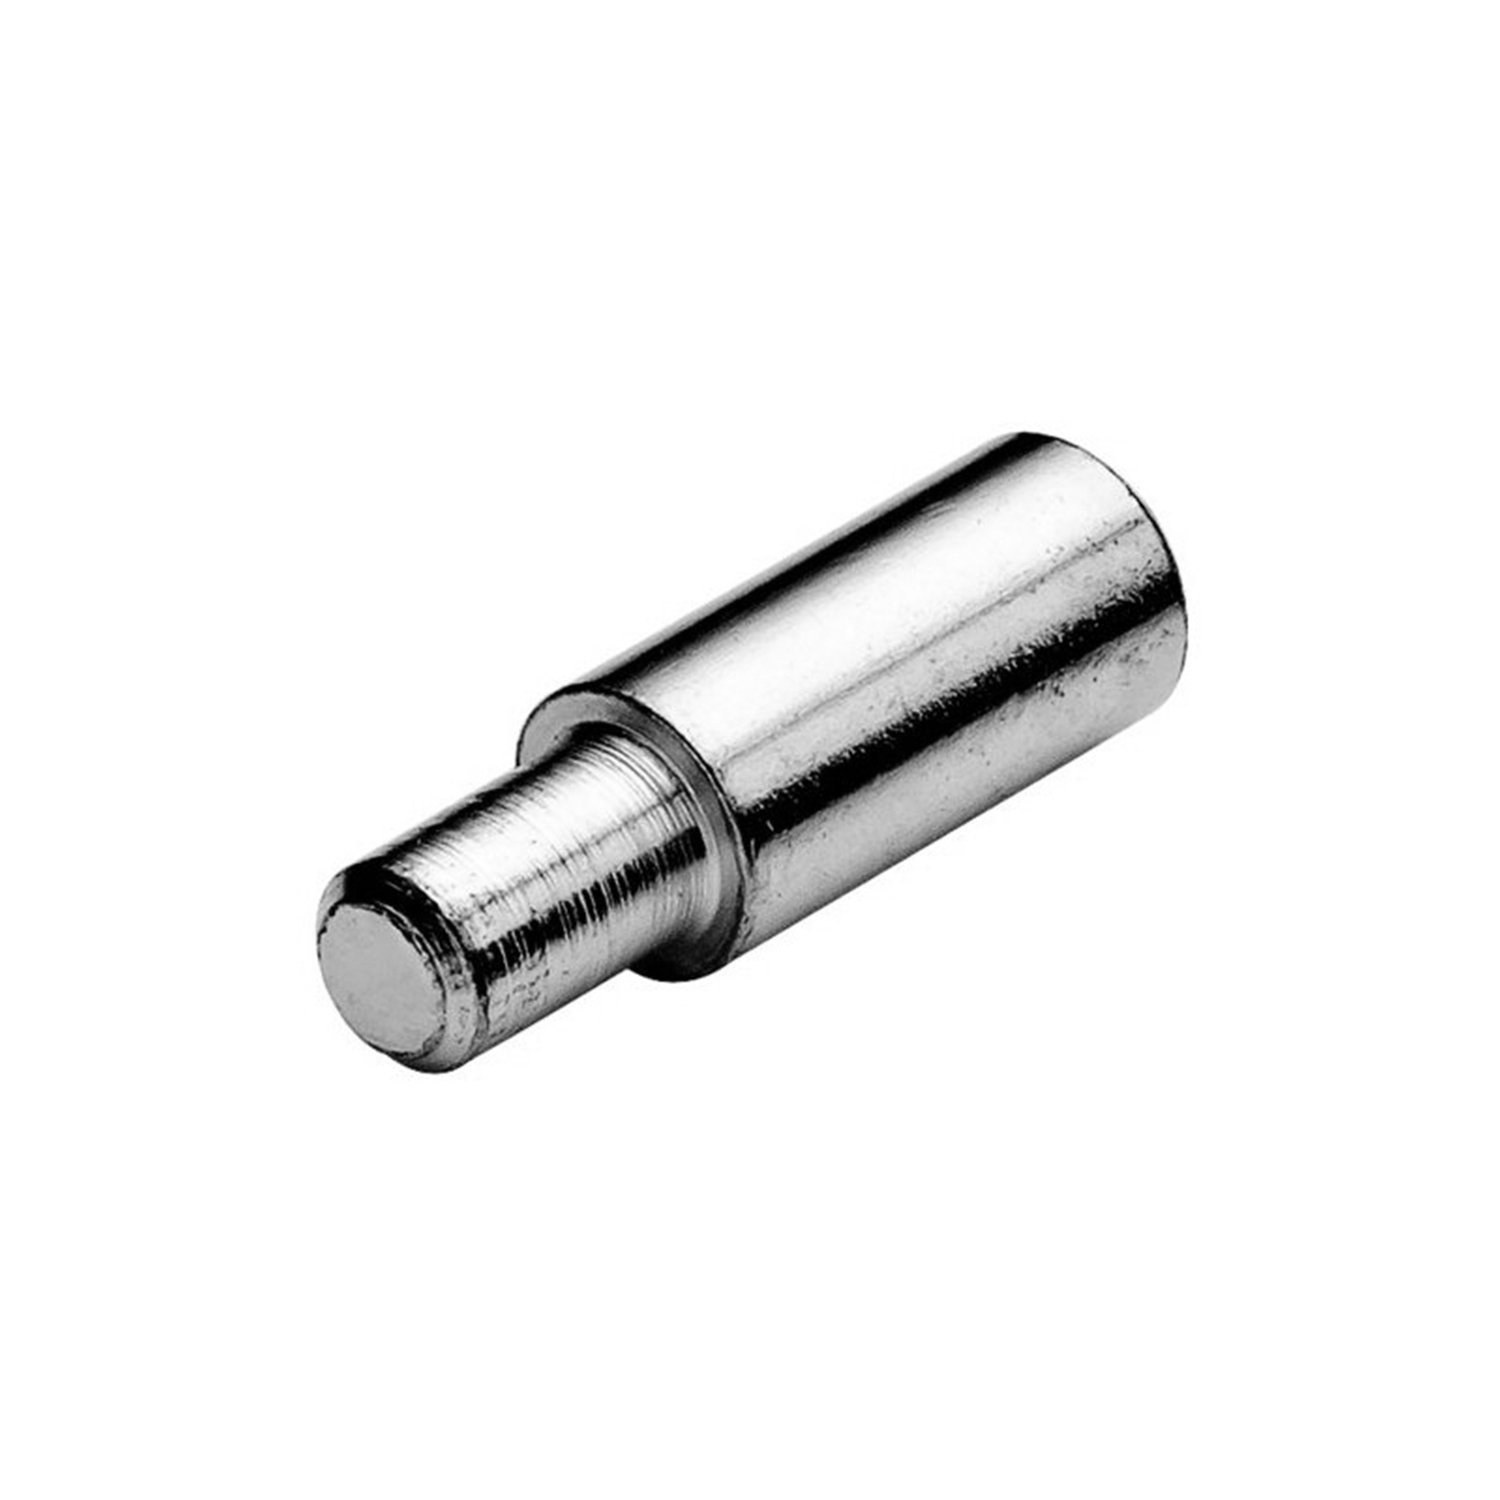 SECOTEC Floor Bearer with Approach Maxi Nickel-Plated 5 MM, Pack of 100, 105033012